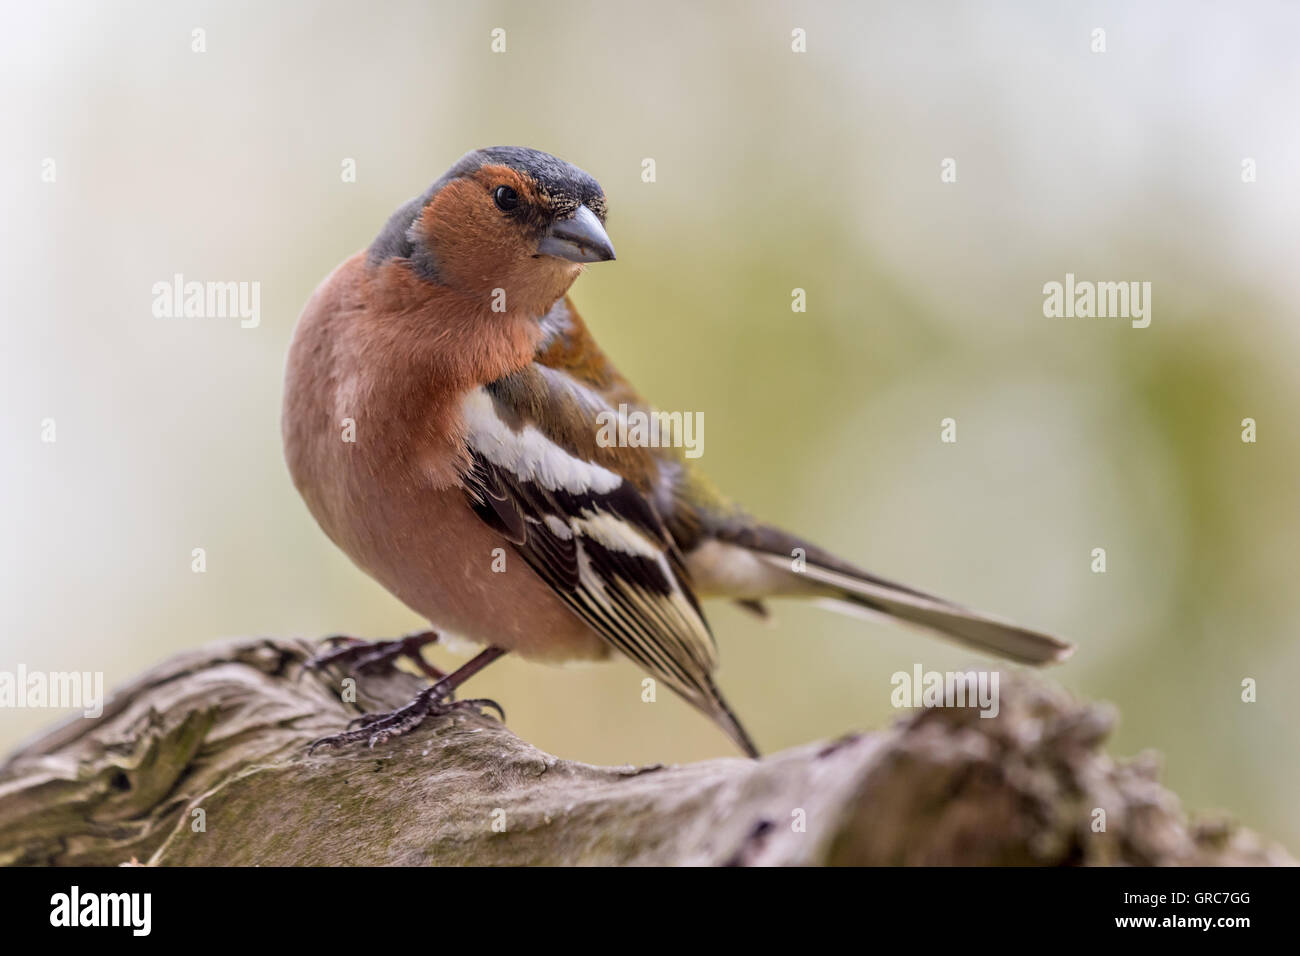 More Attentive Chaffinch - Stock Image